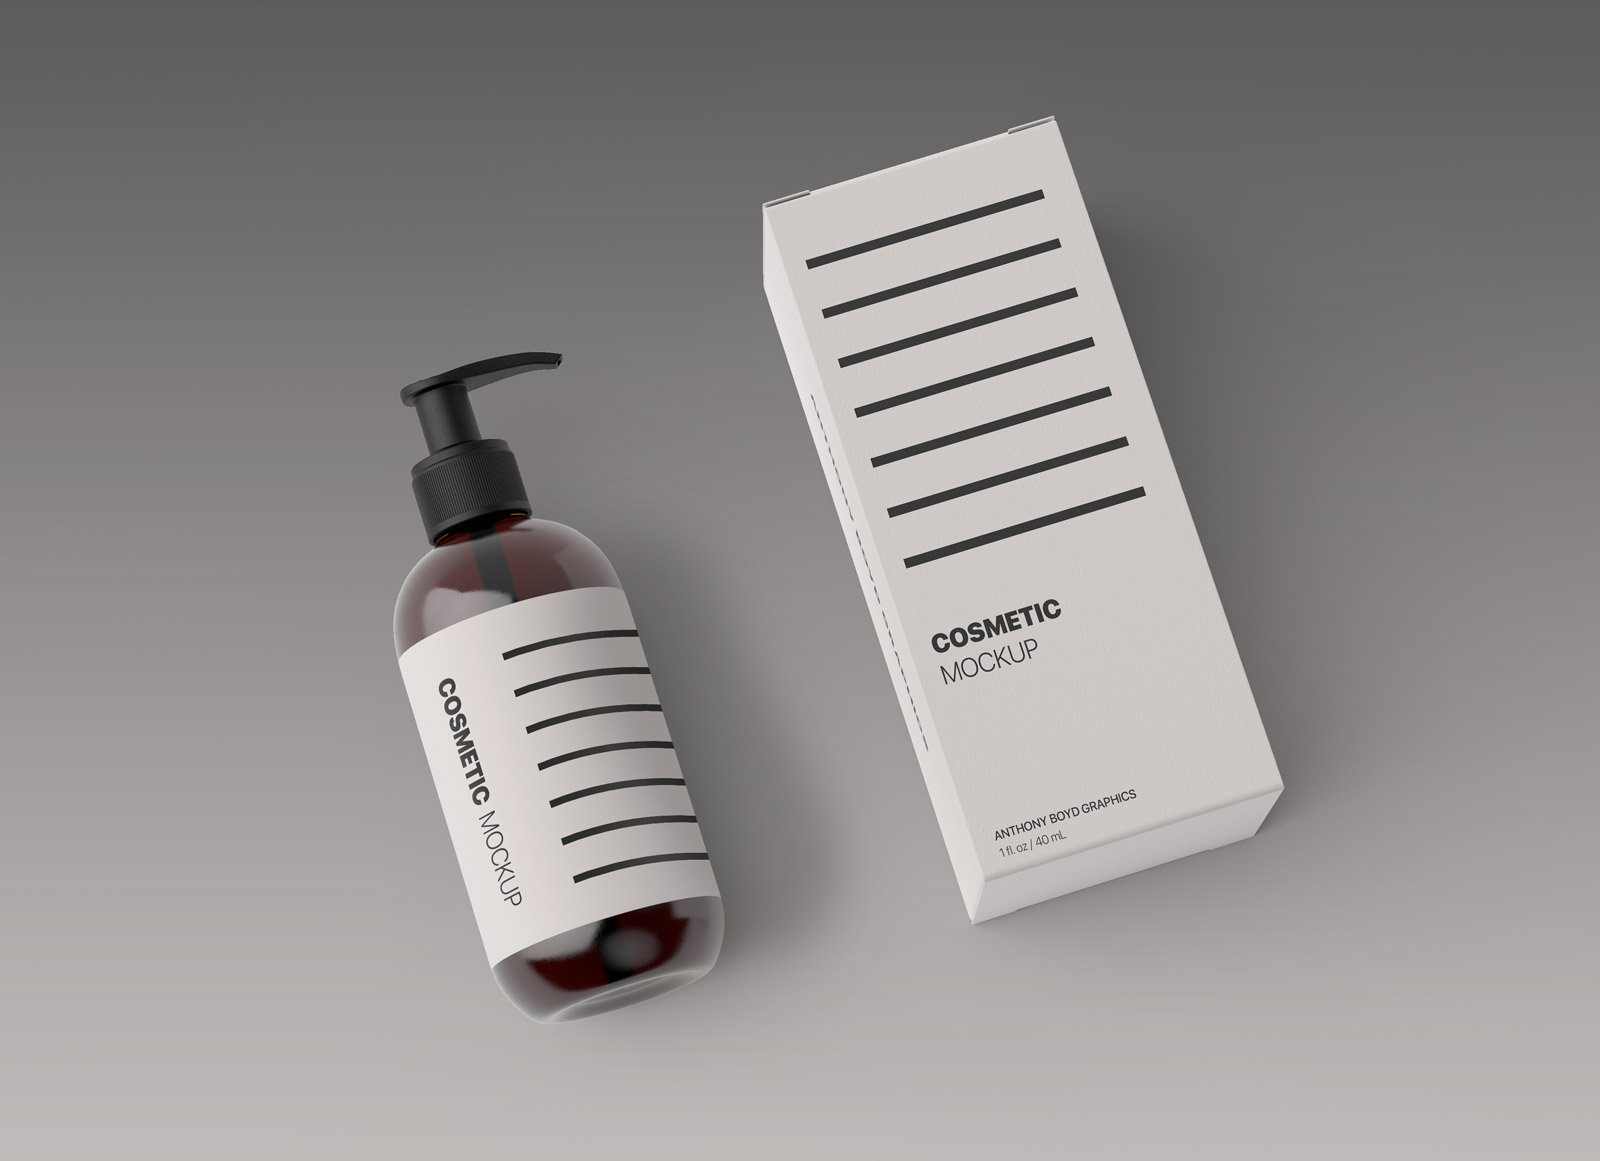 Free-Cosmetic-Spray-Bottle-&-Box-Packaging-Mockup-PSD